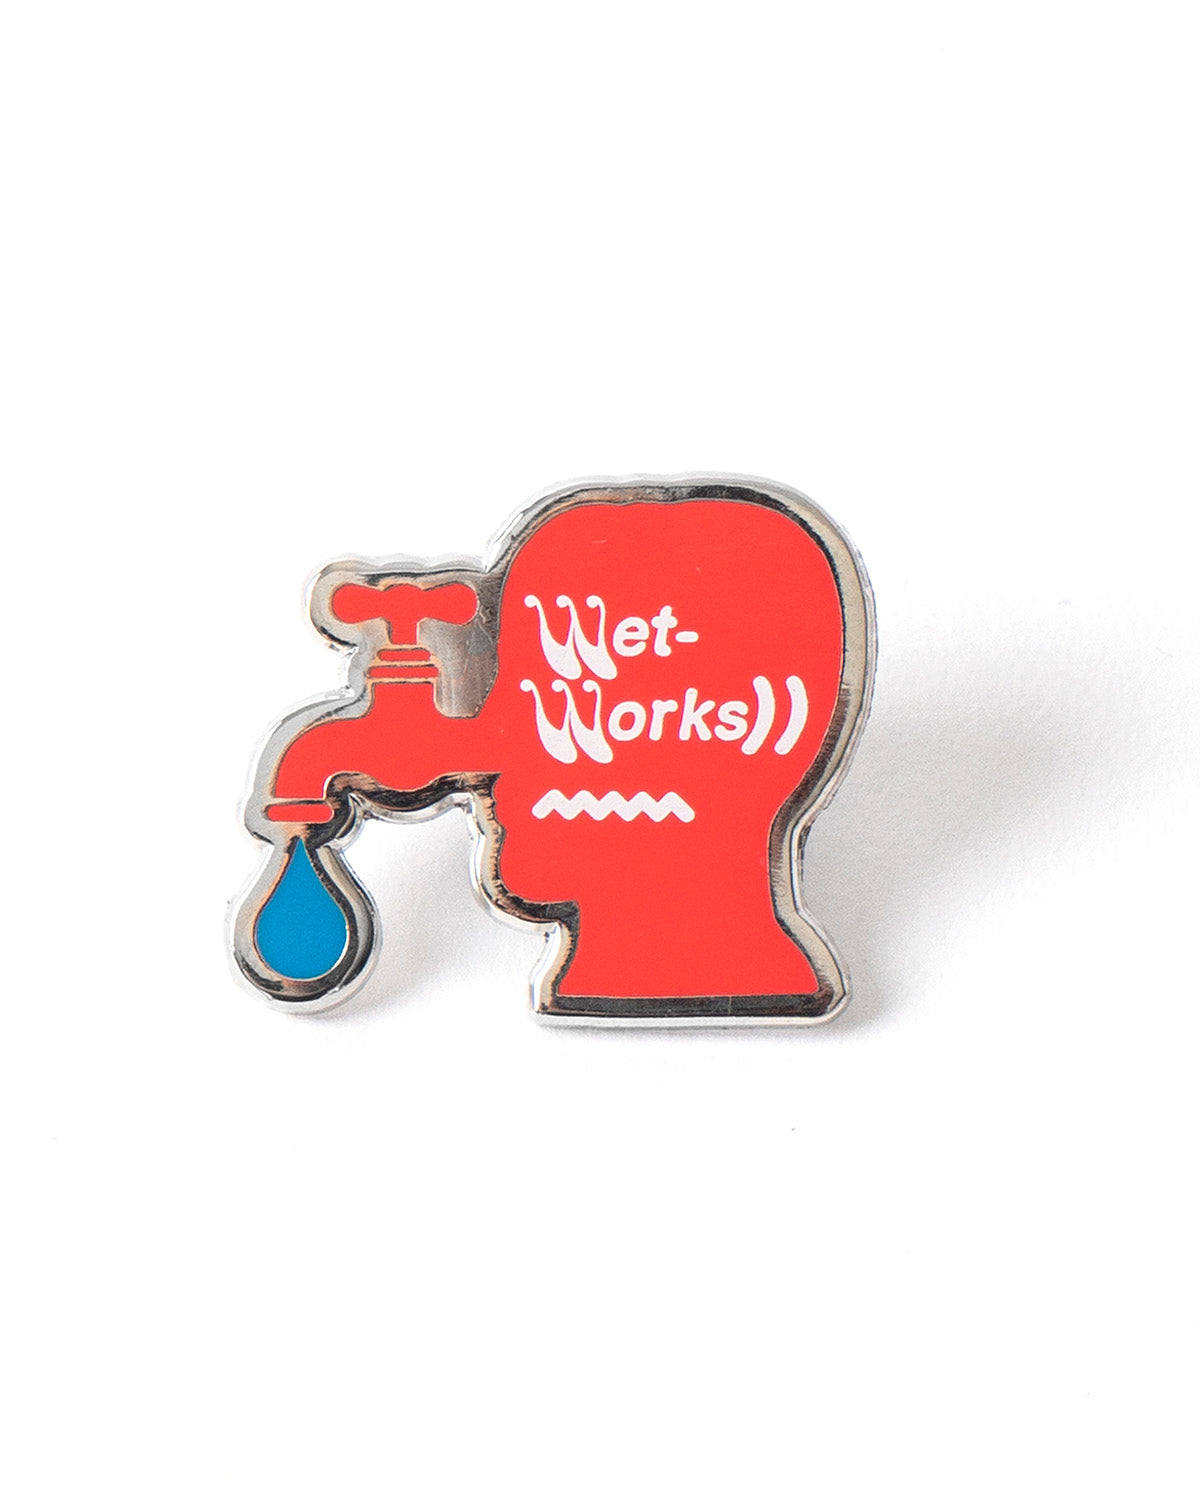 Wet Works Metal Pin - silver